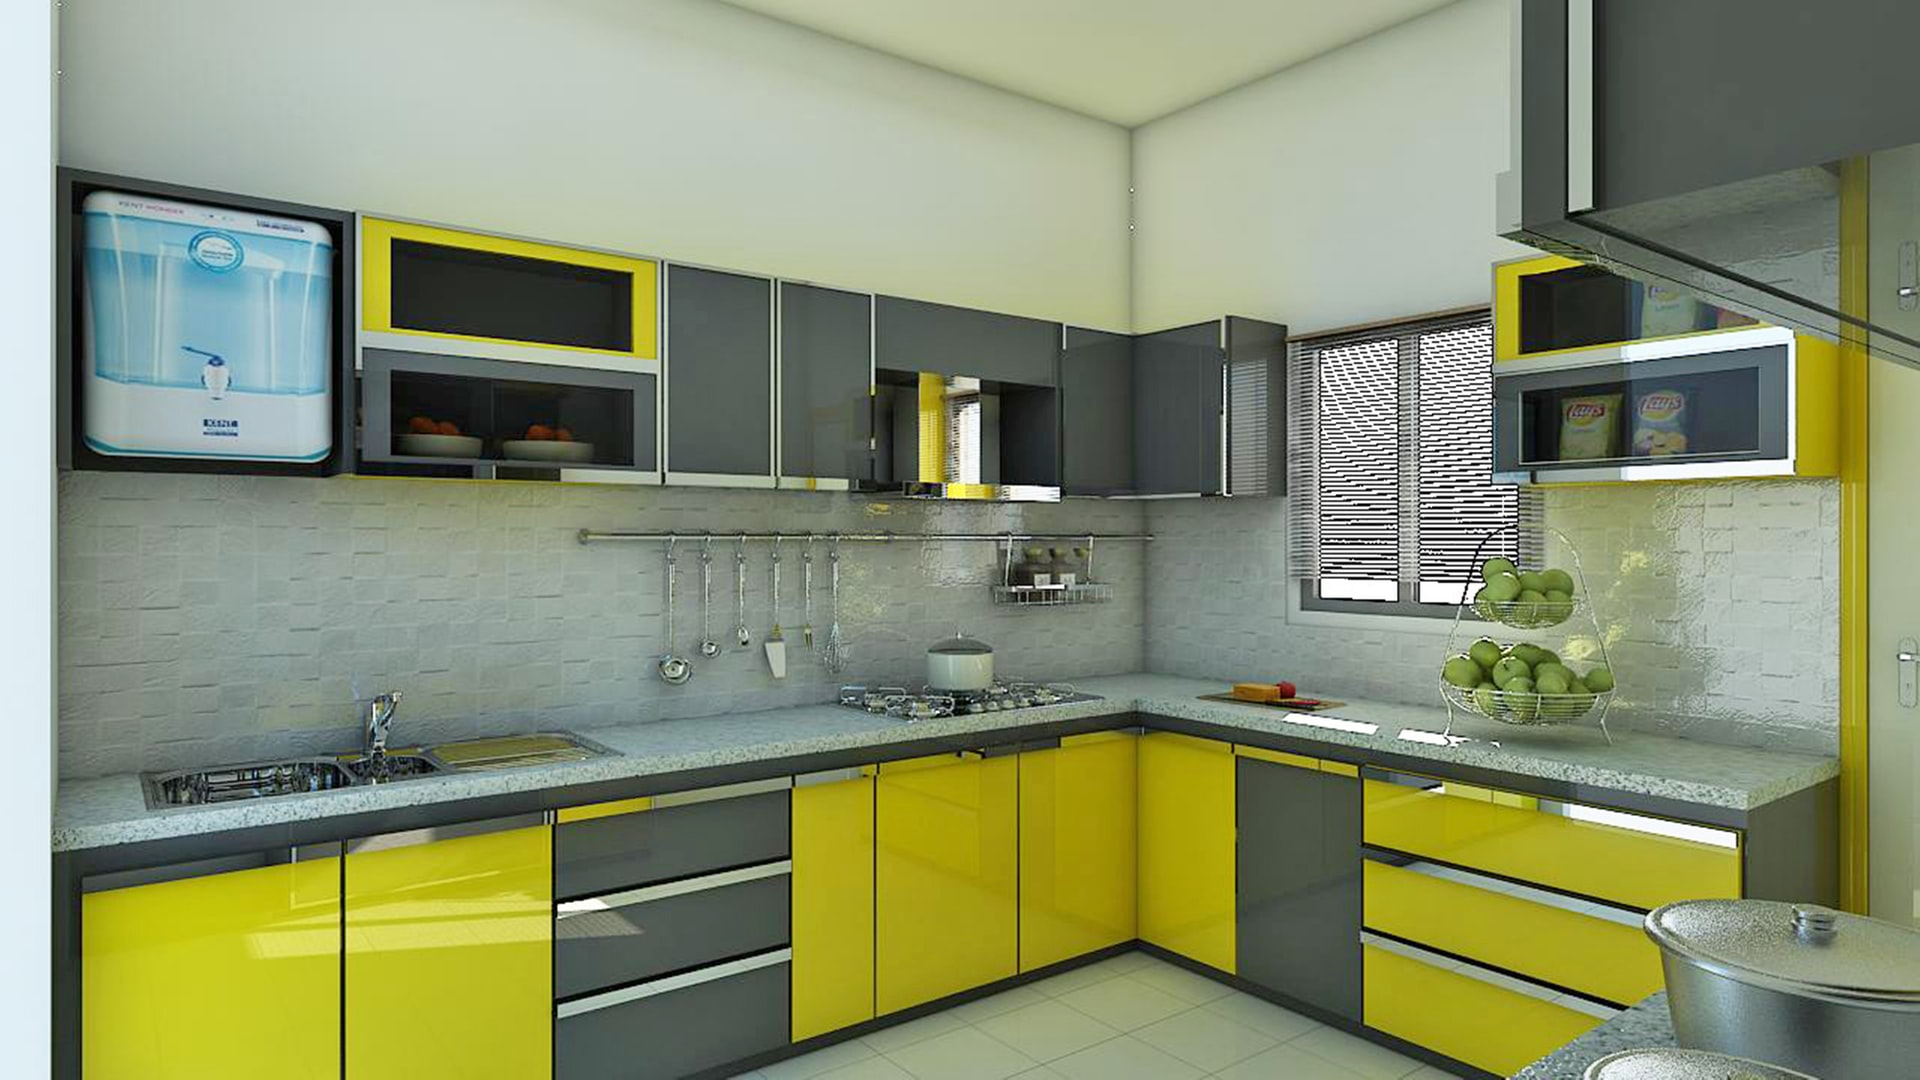 How Your Dream Modular Kitchen Can Be Arranged?